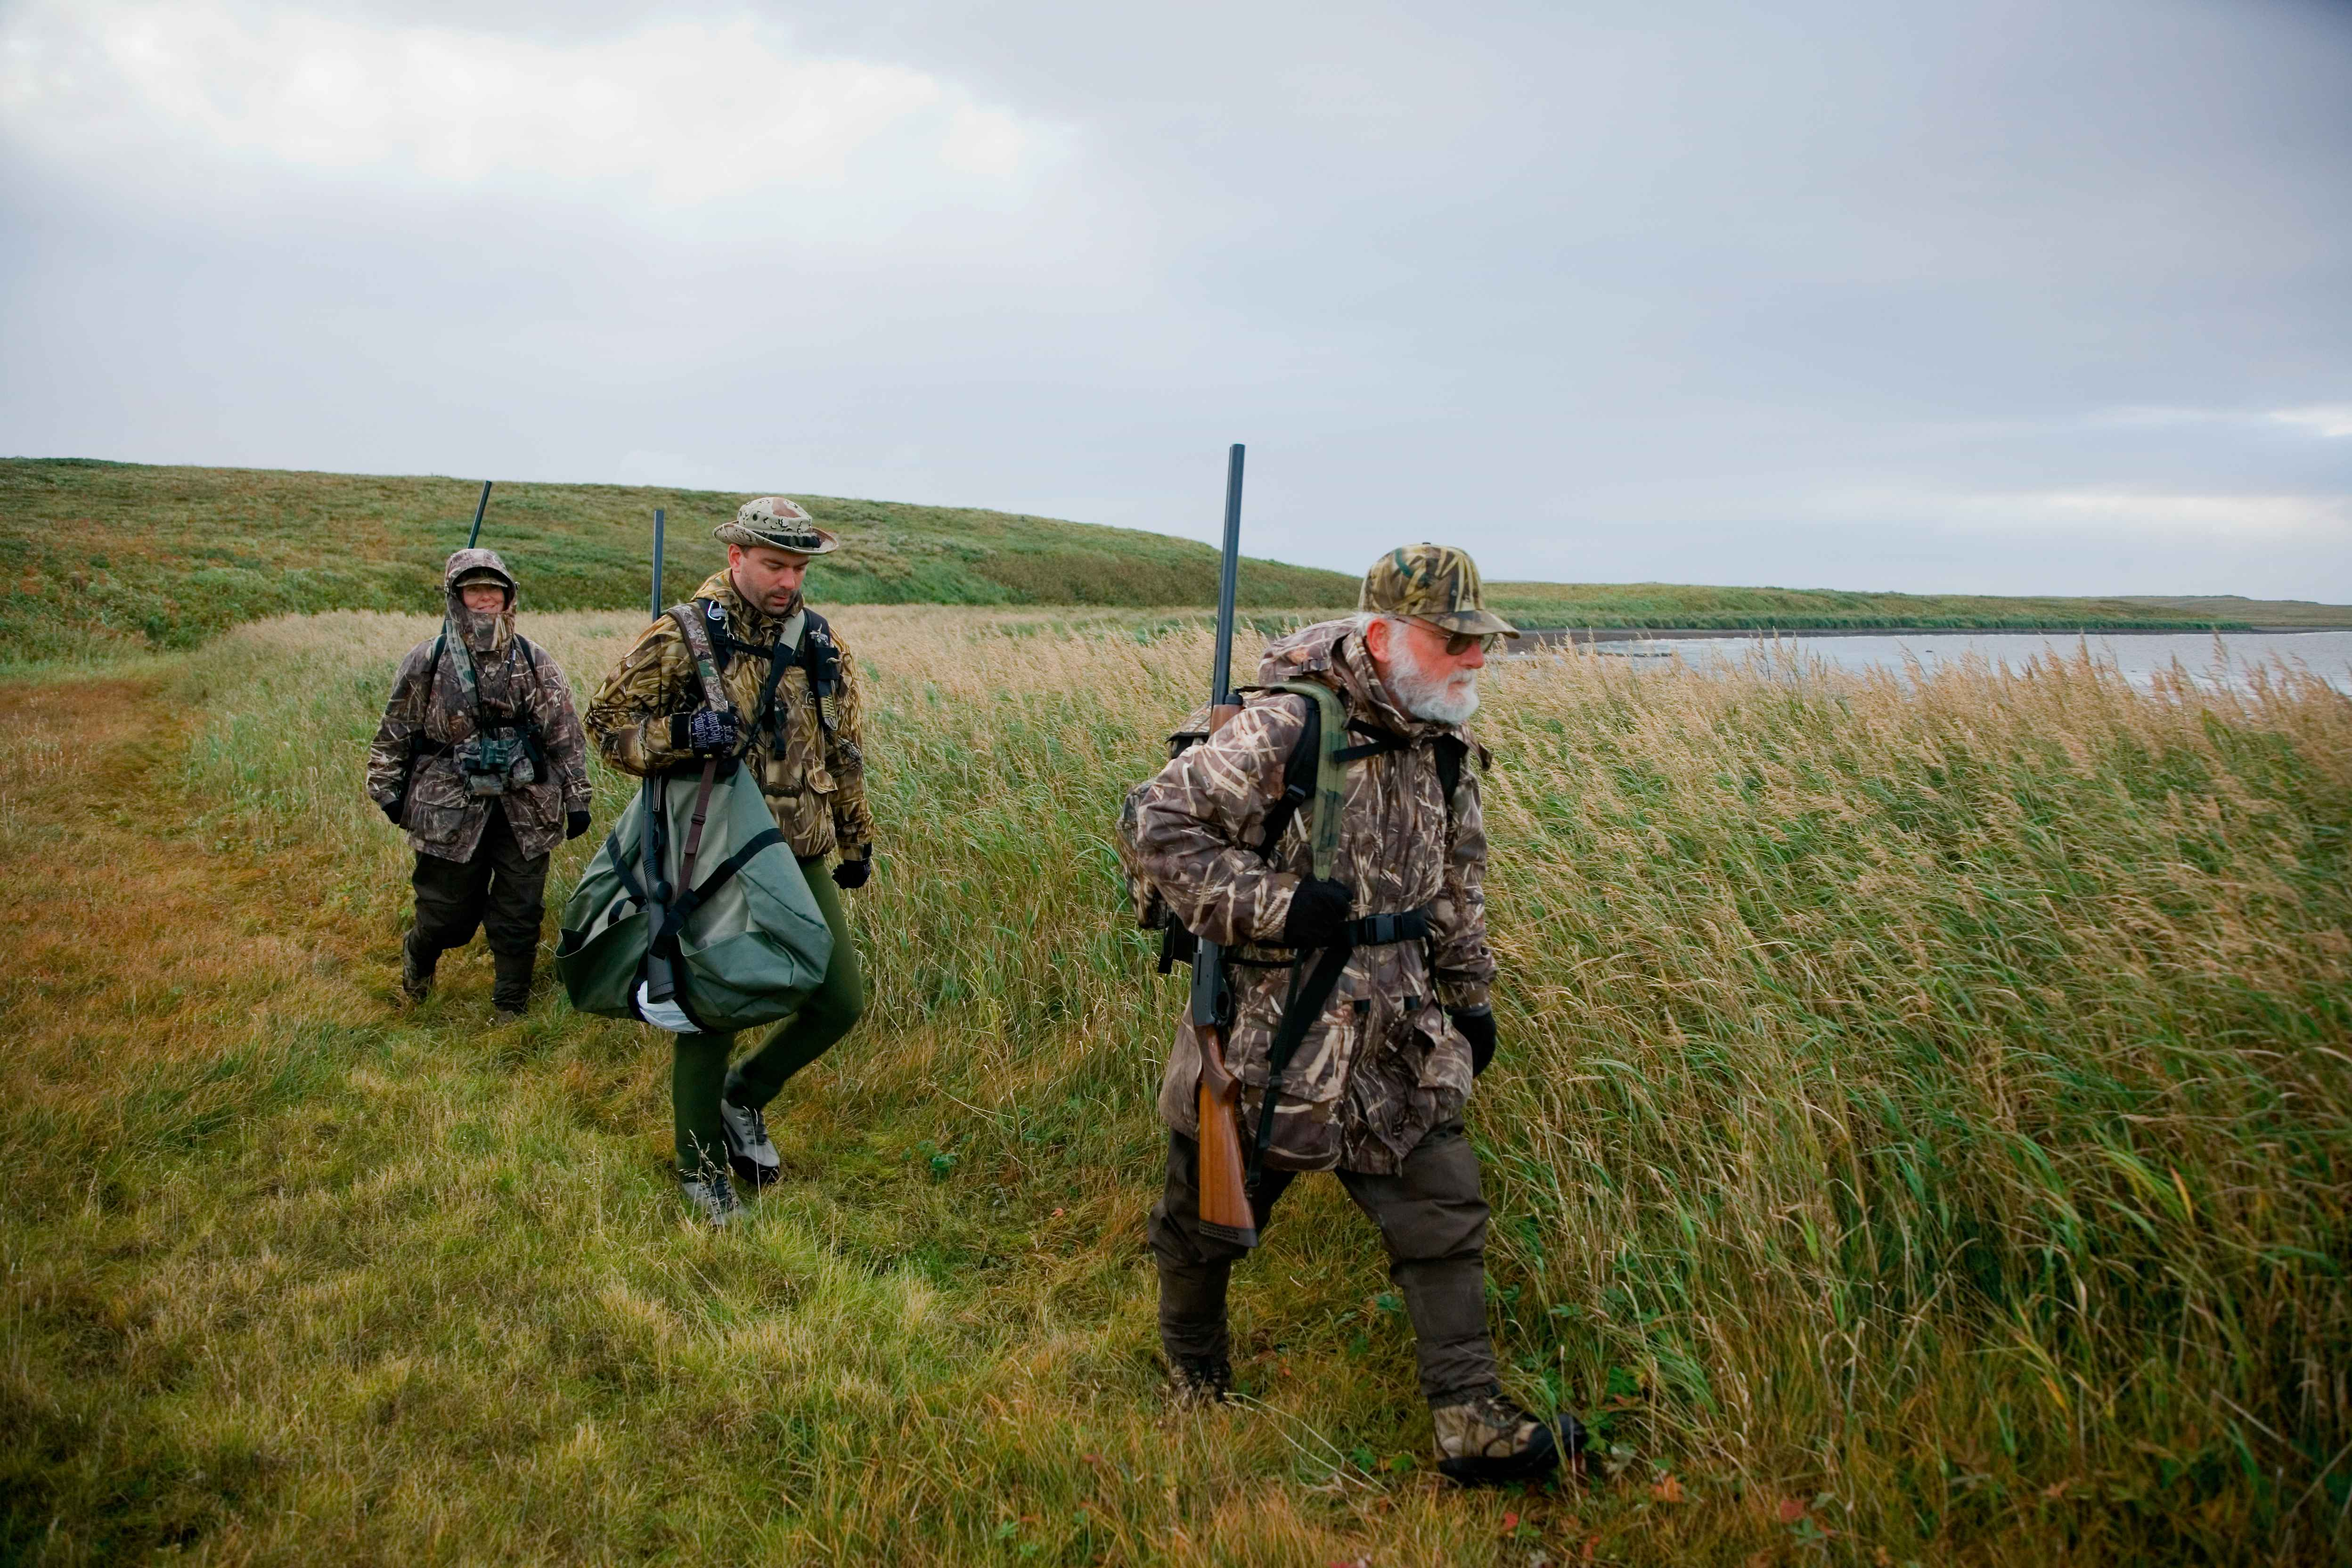 380c0c3dd2671 Three waterfowl hunters donned in camouflage and armed with shotguns.